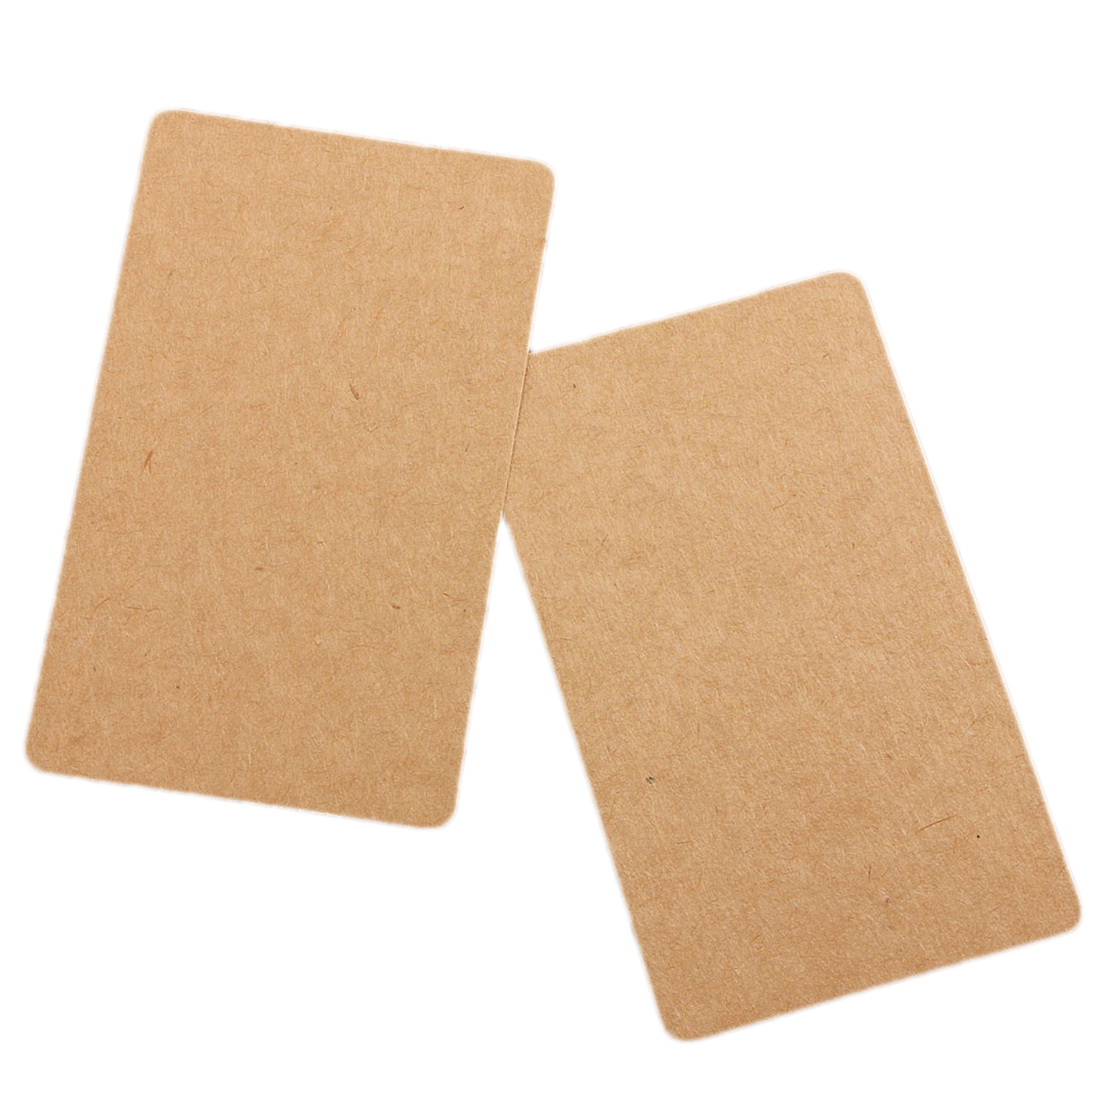 Perfect-100 Brown Kraft Label Paper Tag Blank Luggage Card Party Wedding Hang Gift Favor